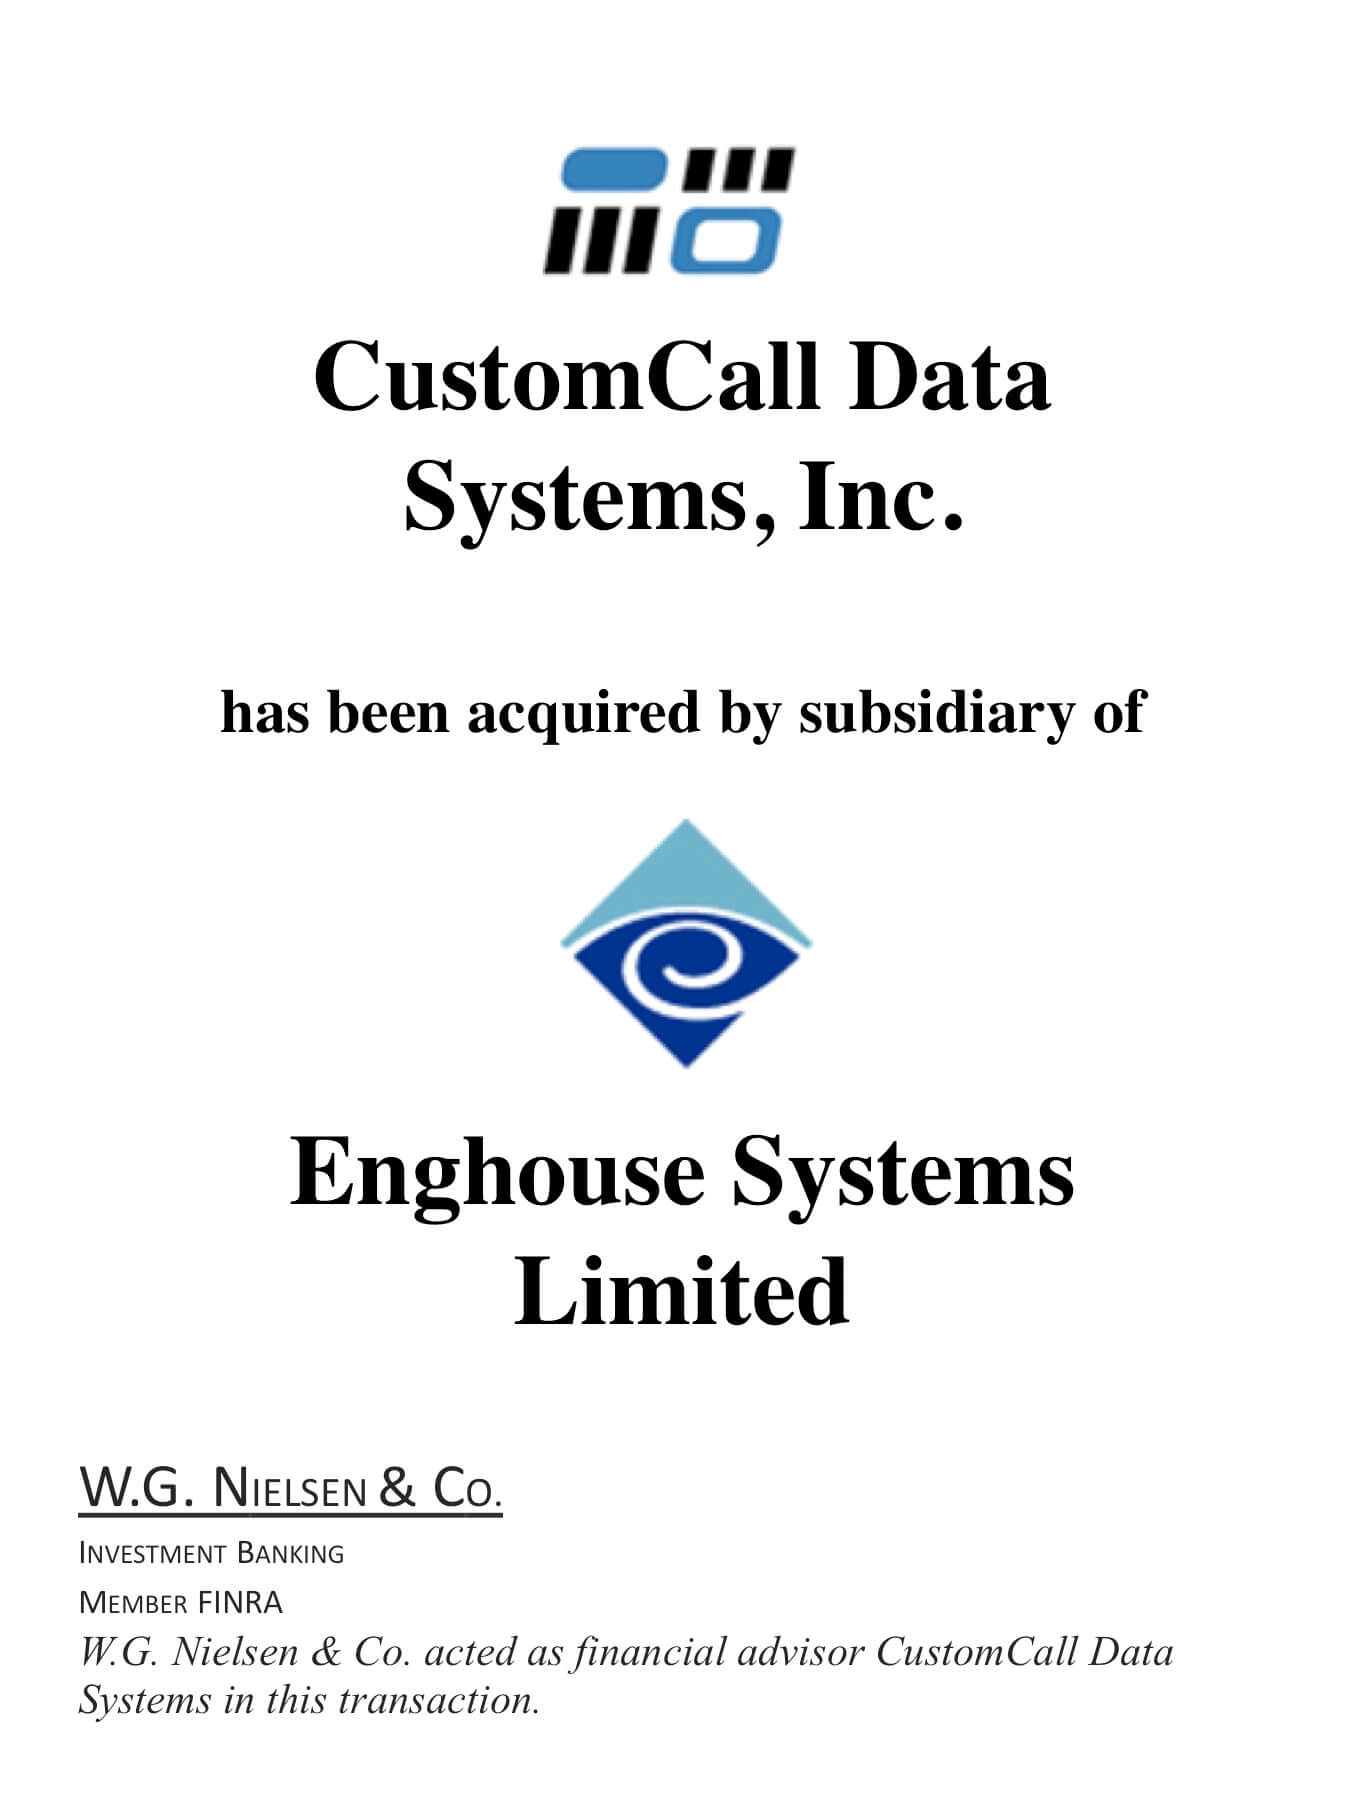 customcall data systems investment banking transaction